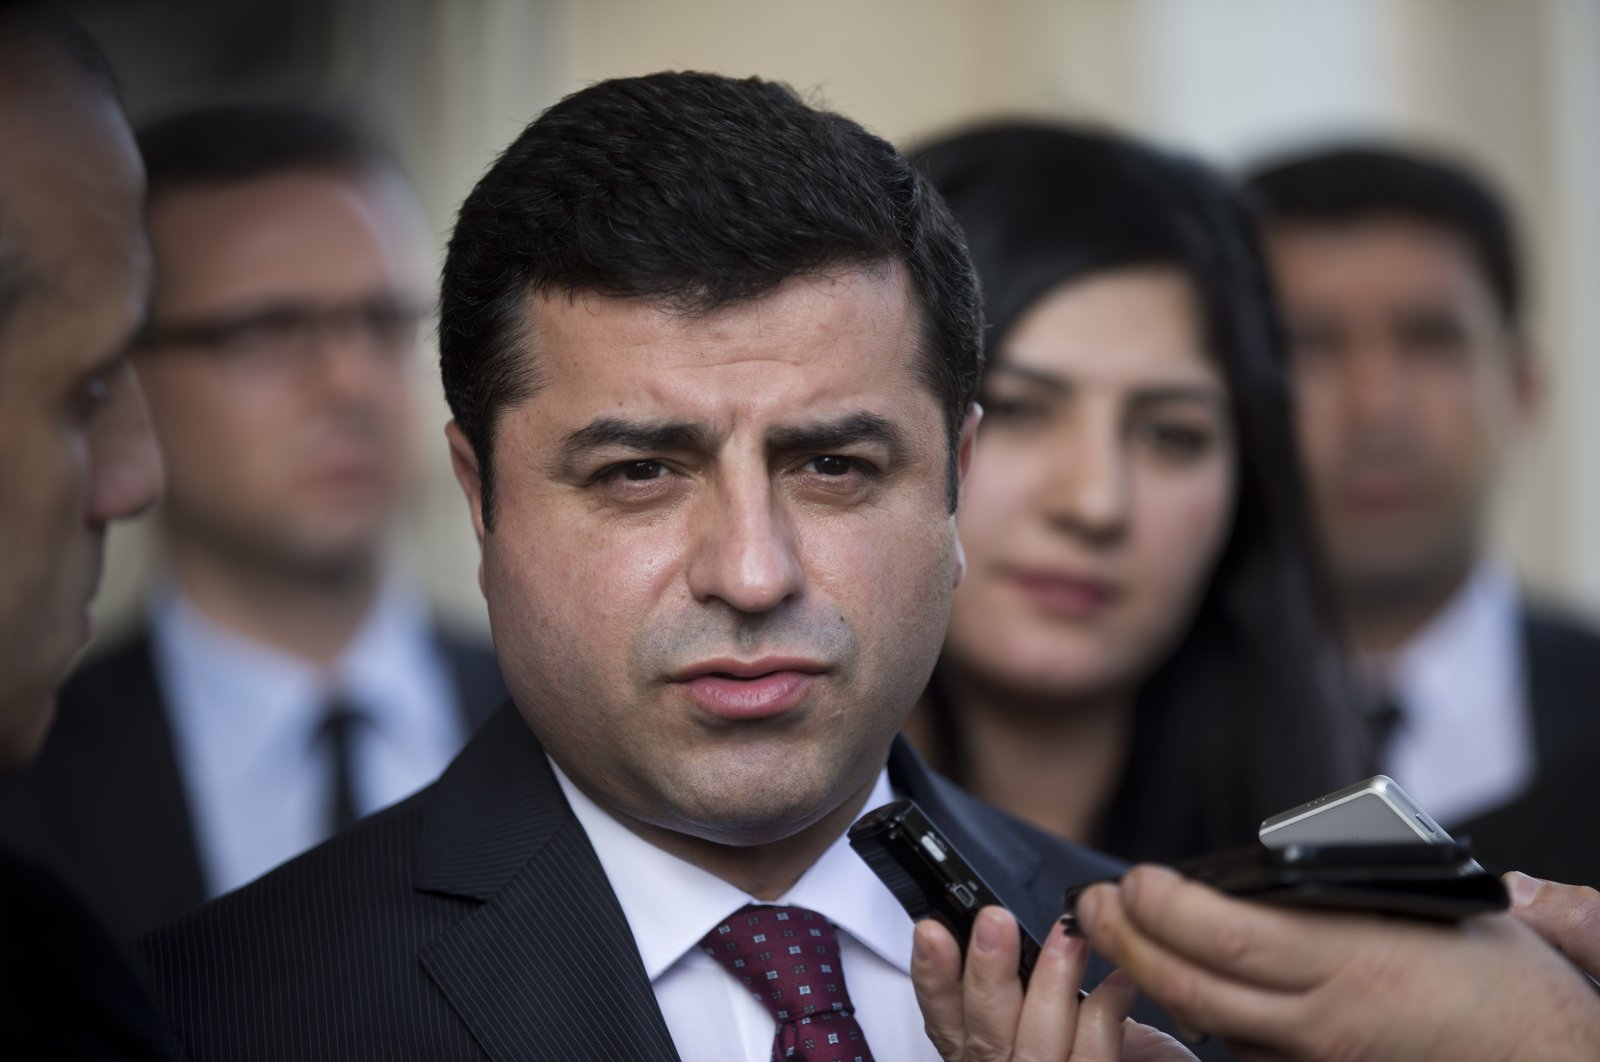 Pro-PKK Peoples' Democratic Party (HDP) Co-Chair Selahattin Demirtaş speaks with journalists after his meeting with Greek Prime Minister Alexis Tsipras, in Athens, Greece, Feb. 15, 2016. (AP Photo)